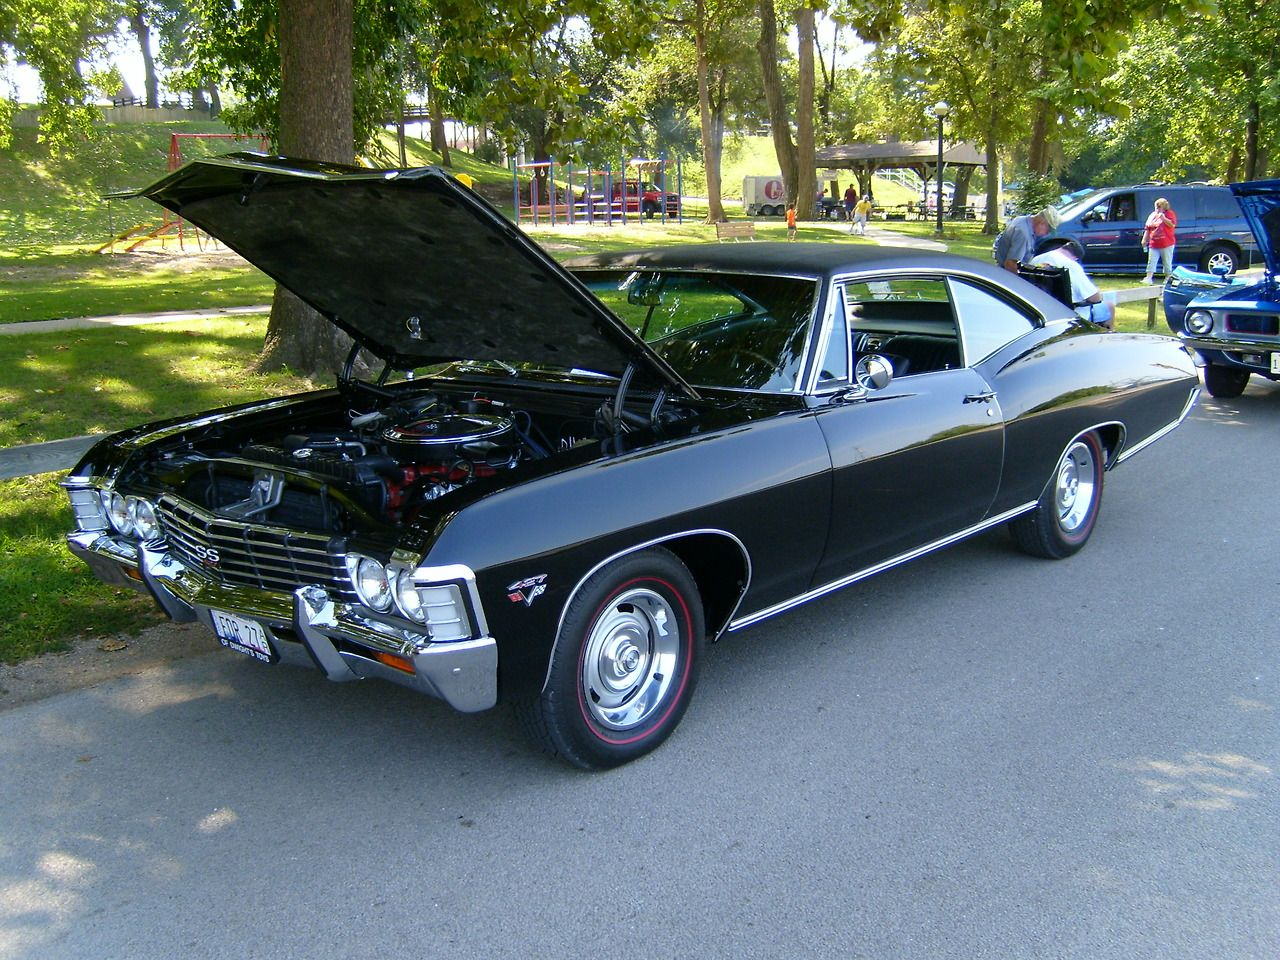 1967 chevrolet impala ss 427 sport coupe 427 cid 385 hp turbo fire v 8 my favorite year. Black Bedroom Furniture Sets. Home Design Ideas